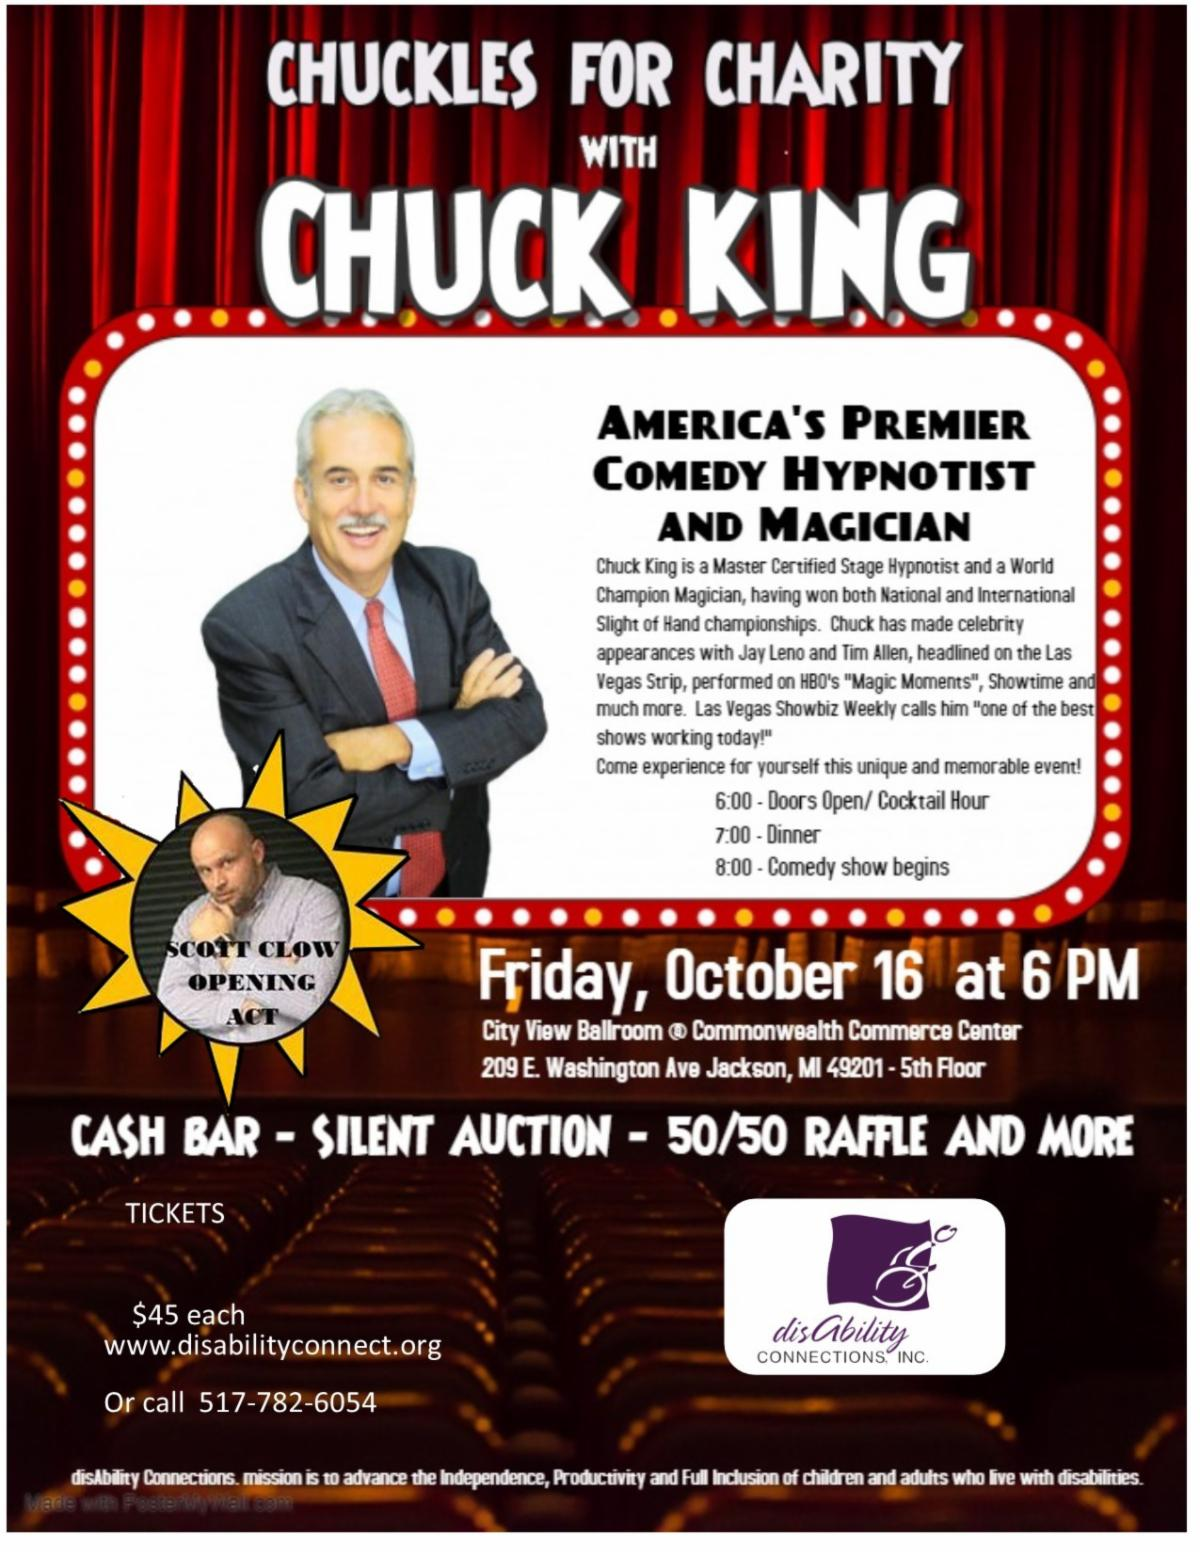 the background is made to appear like a theater with a big red curtain across an empty stage ad empty seats.  white text says chuckles for charity with Chuck King.  americas premier comedy hypnotist and magician.  opening act by jackson radio host Scott Cl